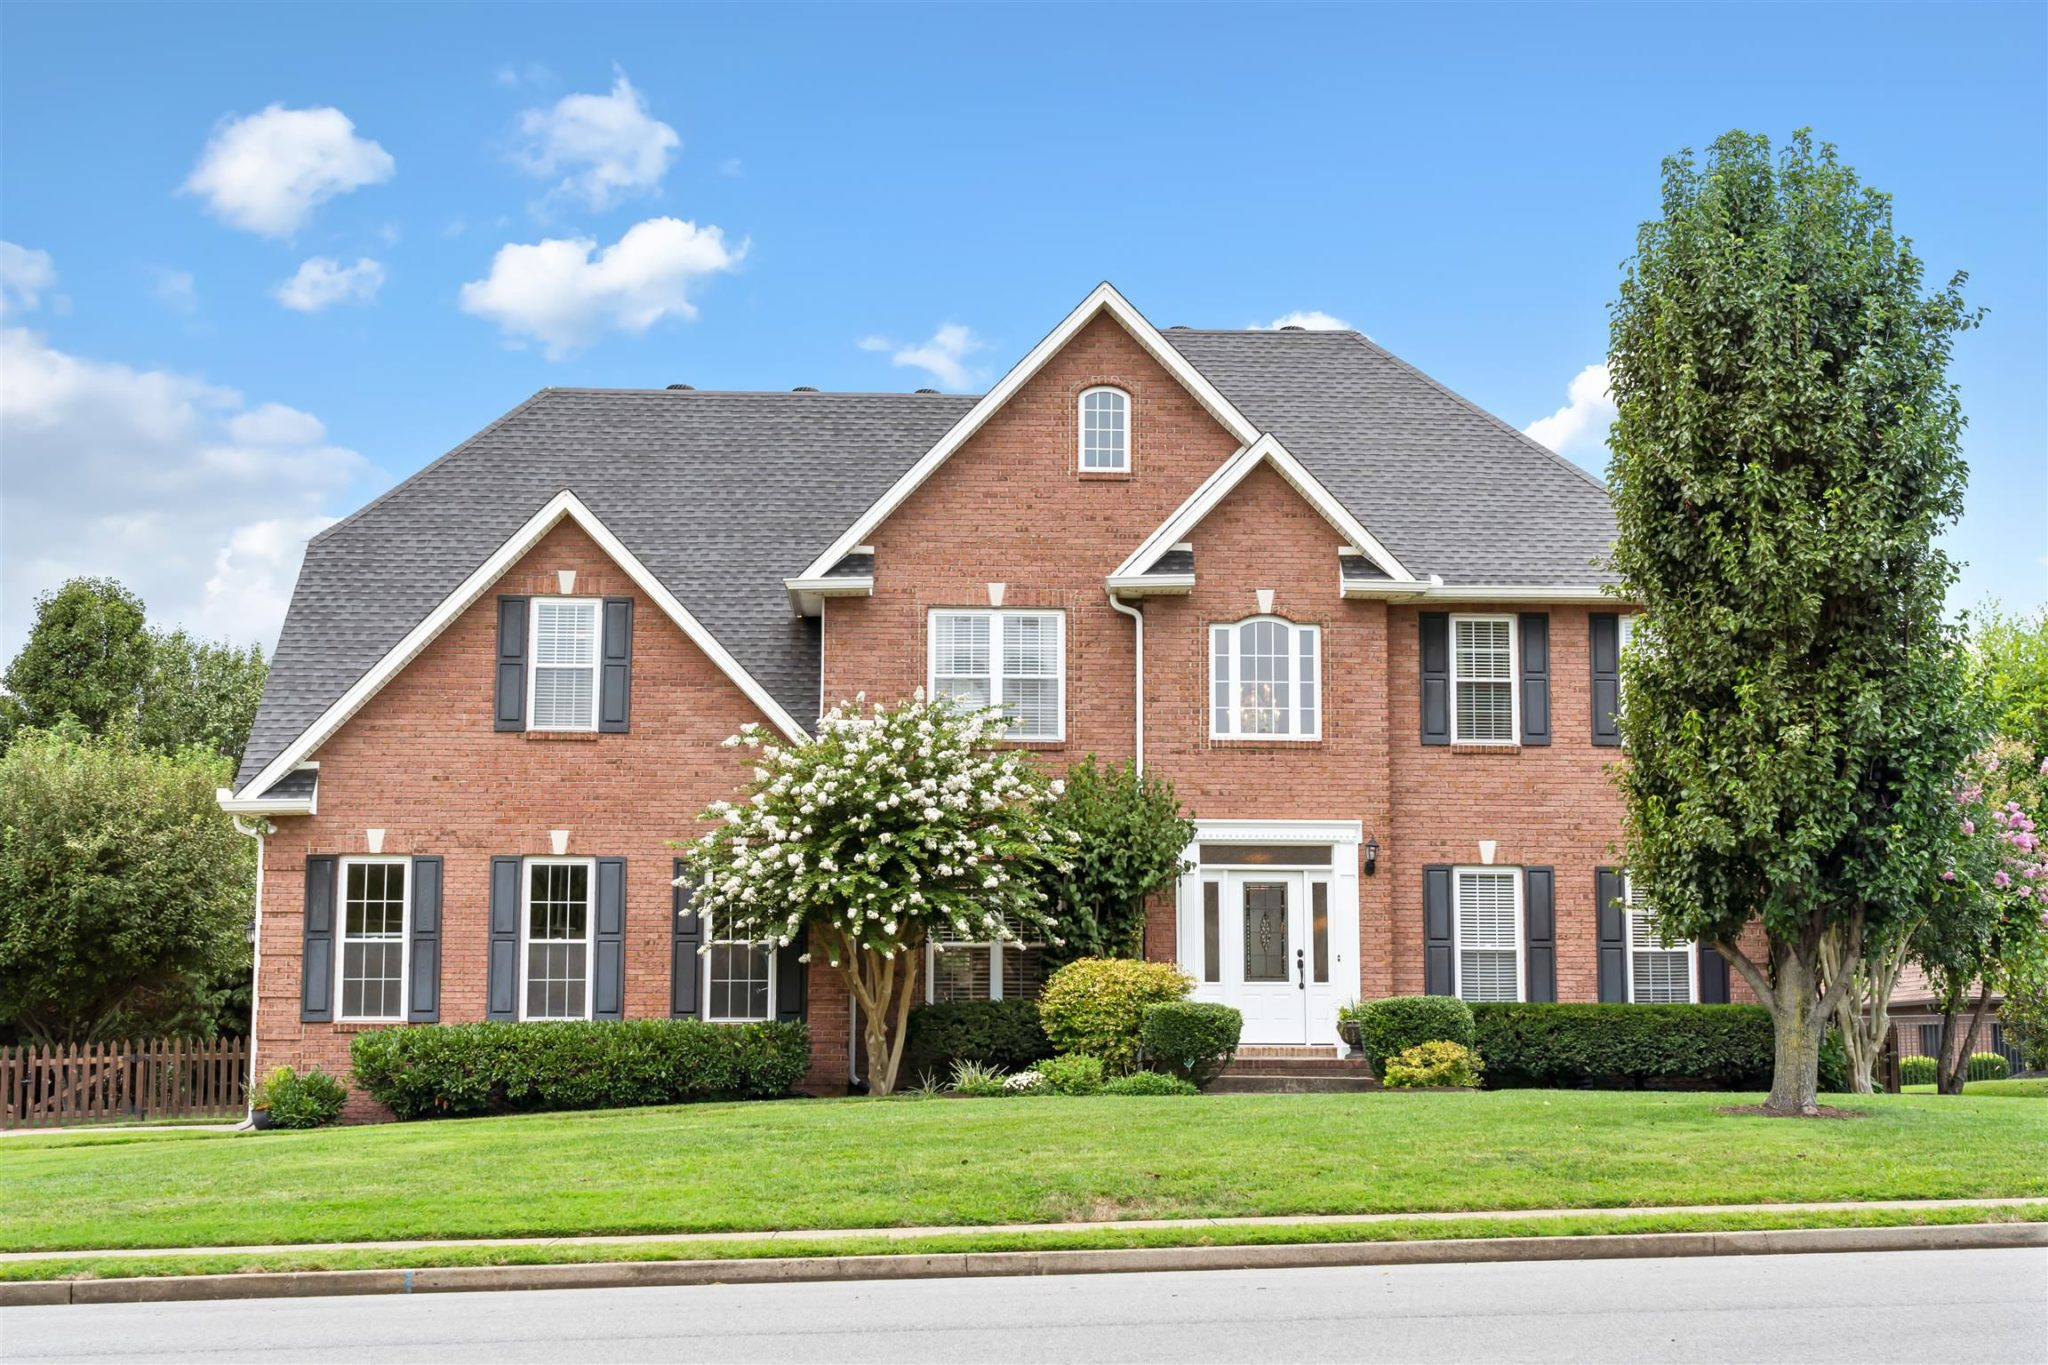 Villages Homes For Sale In Clarksville Tn